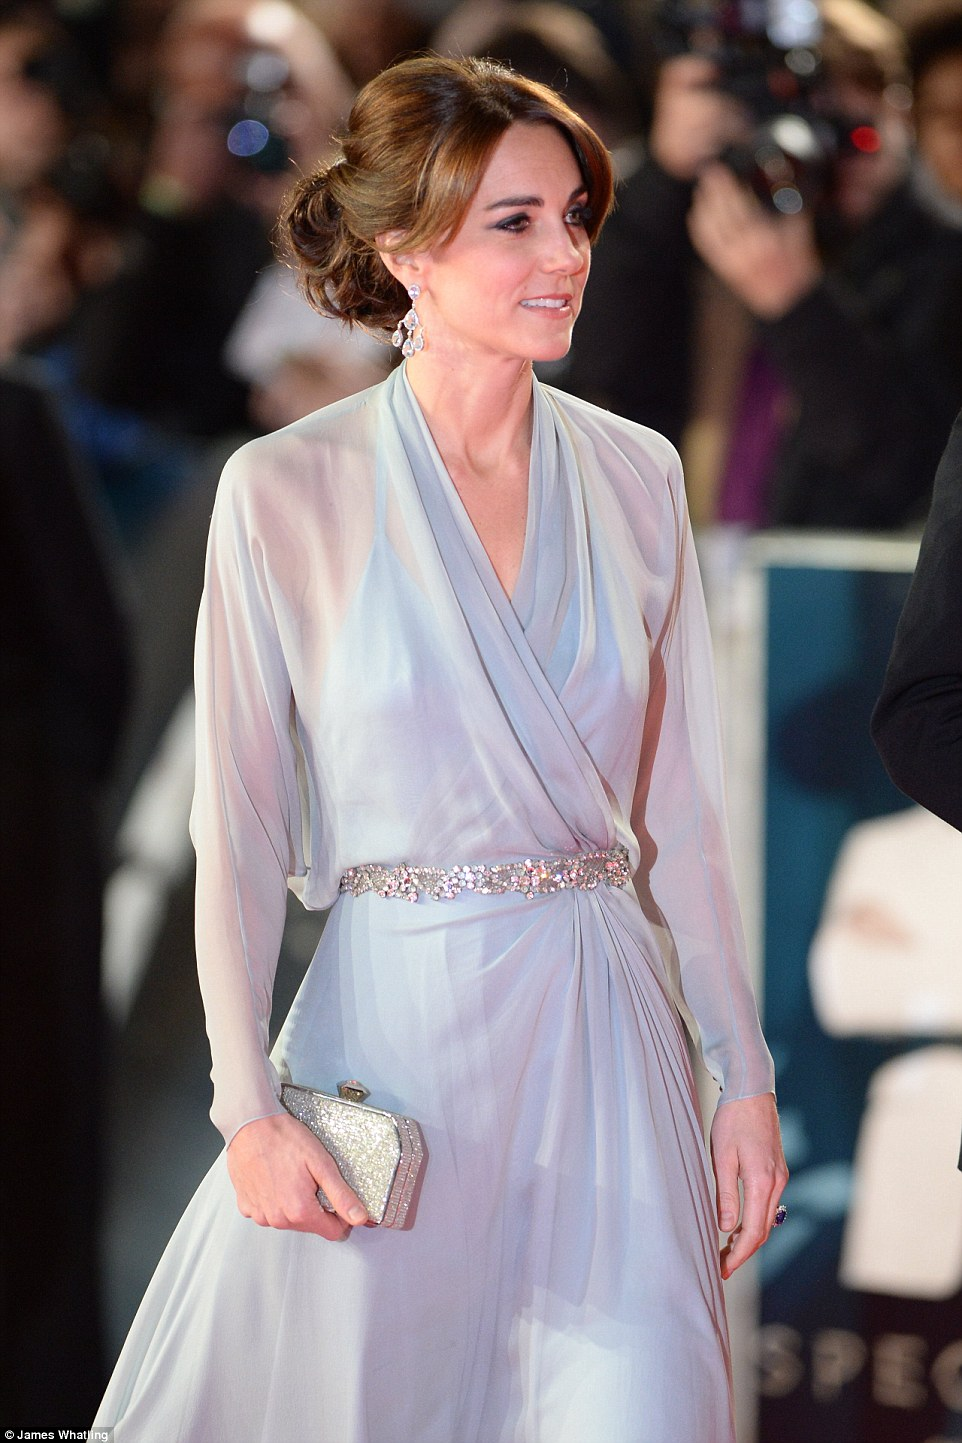 Elegant: Kate dazzled in a diaphanous pale blue full length gown and diamonds with her hair in an elaborate up do